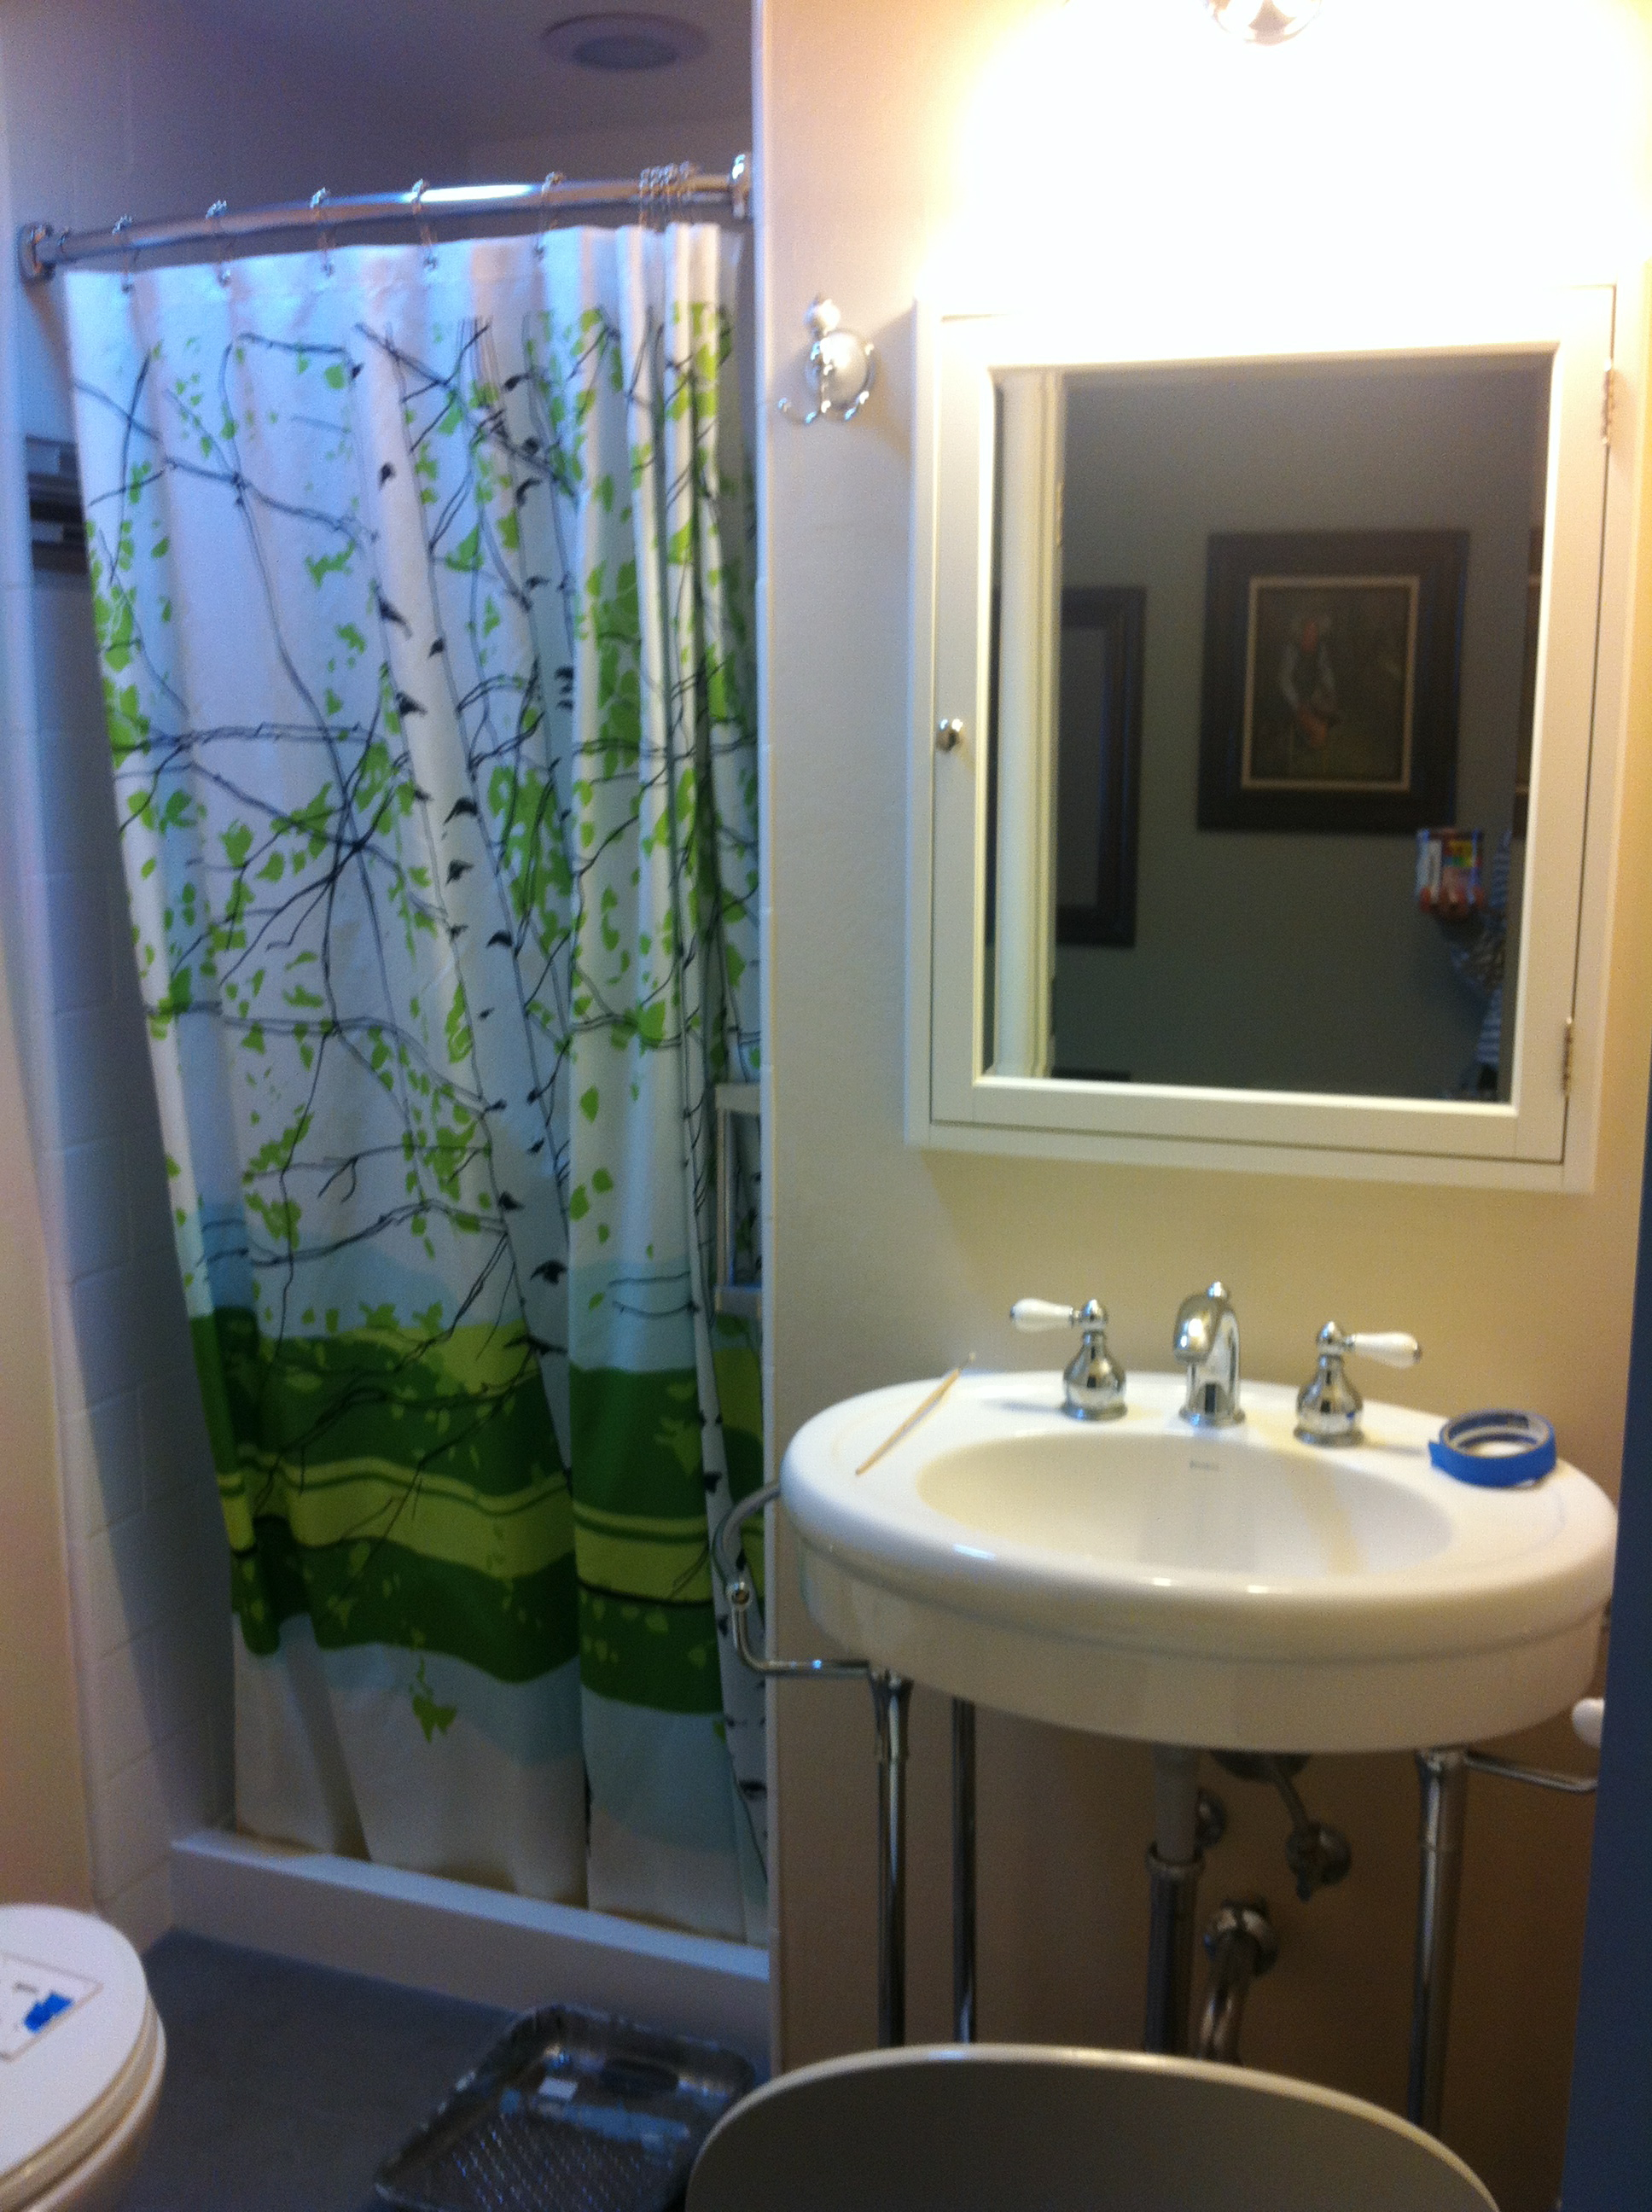 When We Got Back From Europe, Our Bathroom Was DONE. It Felt Like Christmas  Morning. We Had Just Gotten To Go On A Round The World Adventure, And Back  Home, ...